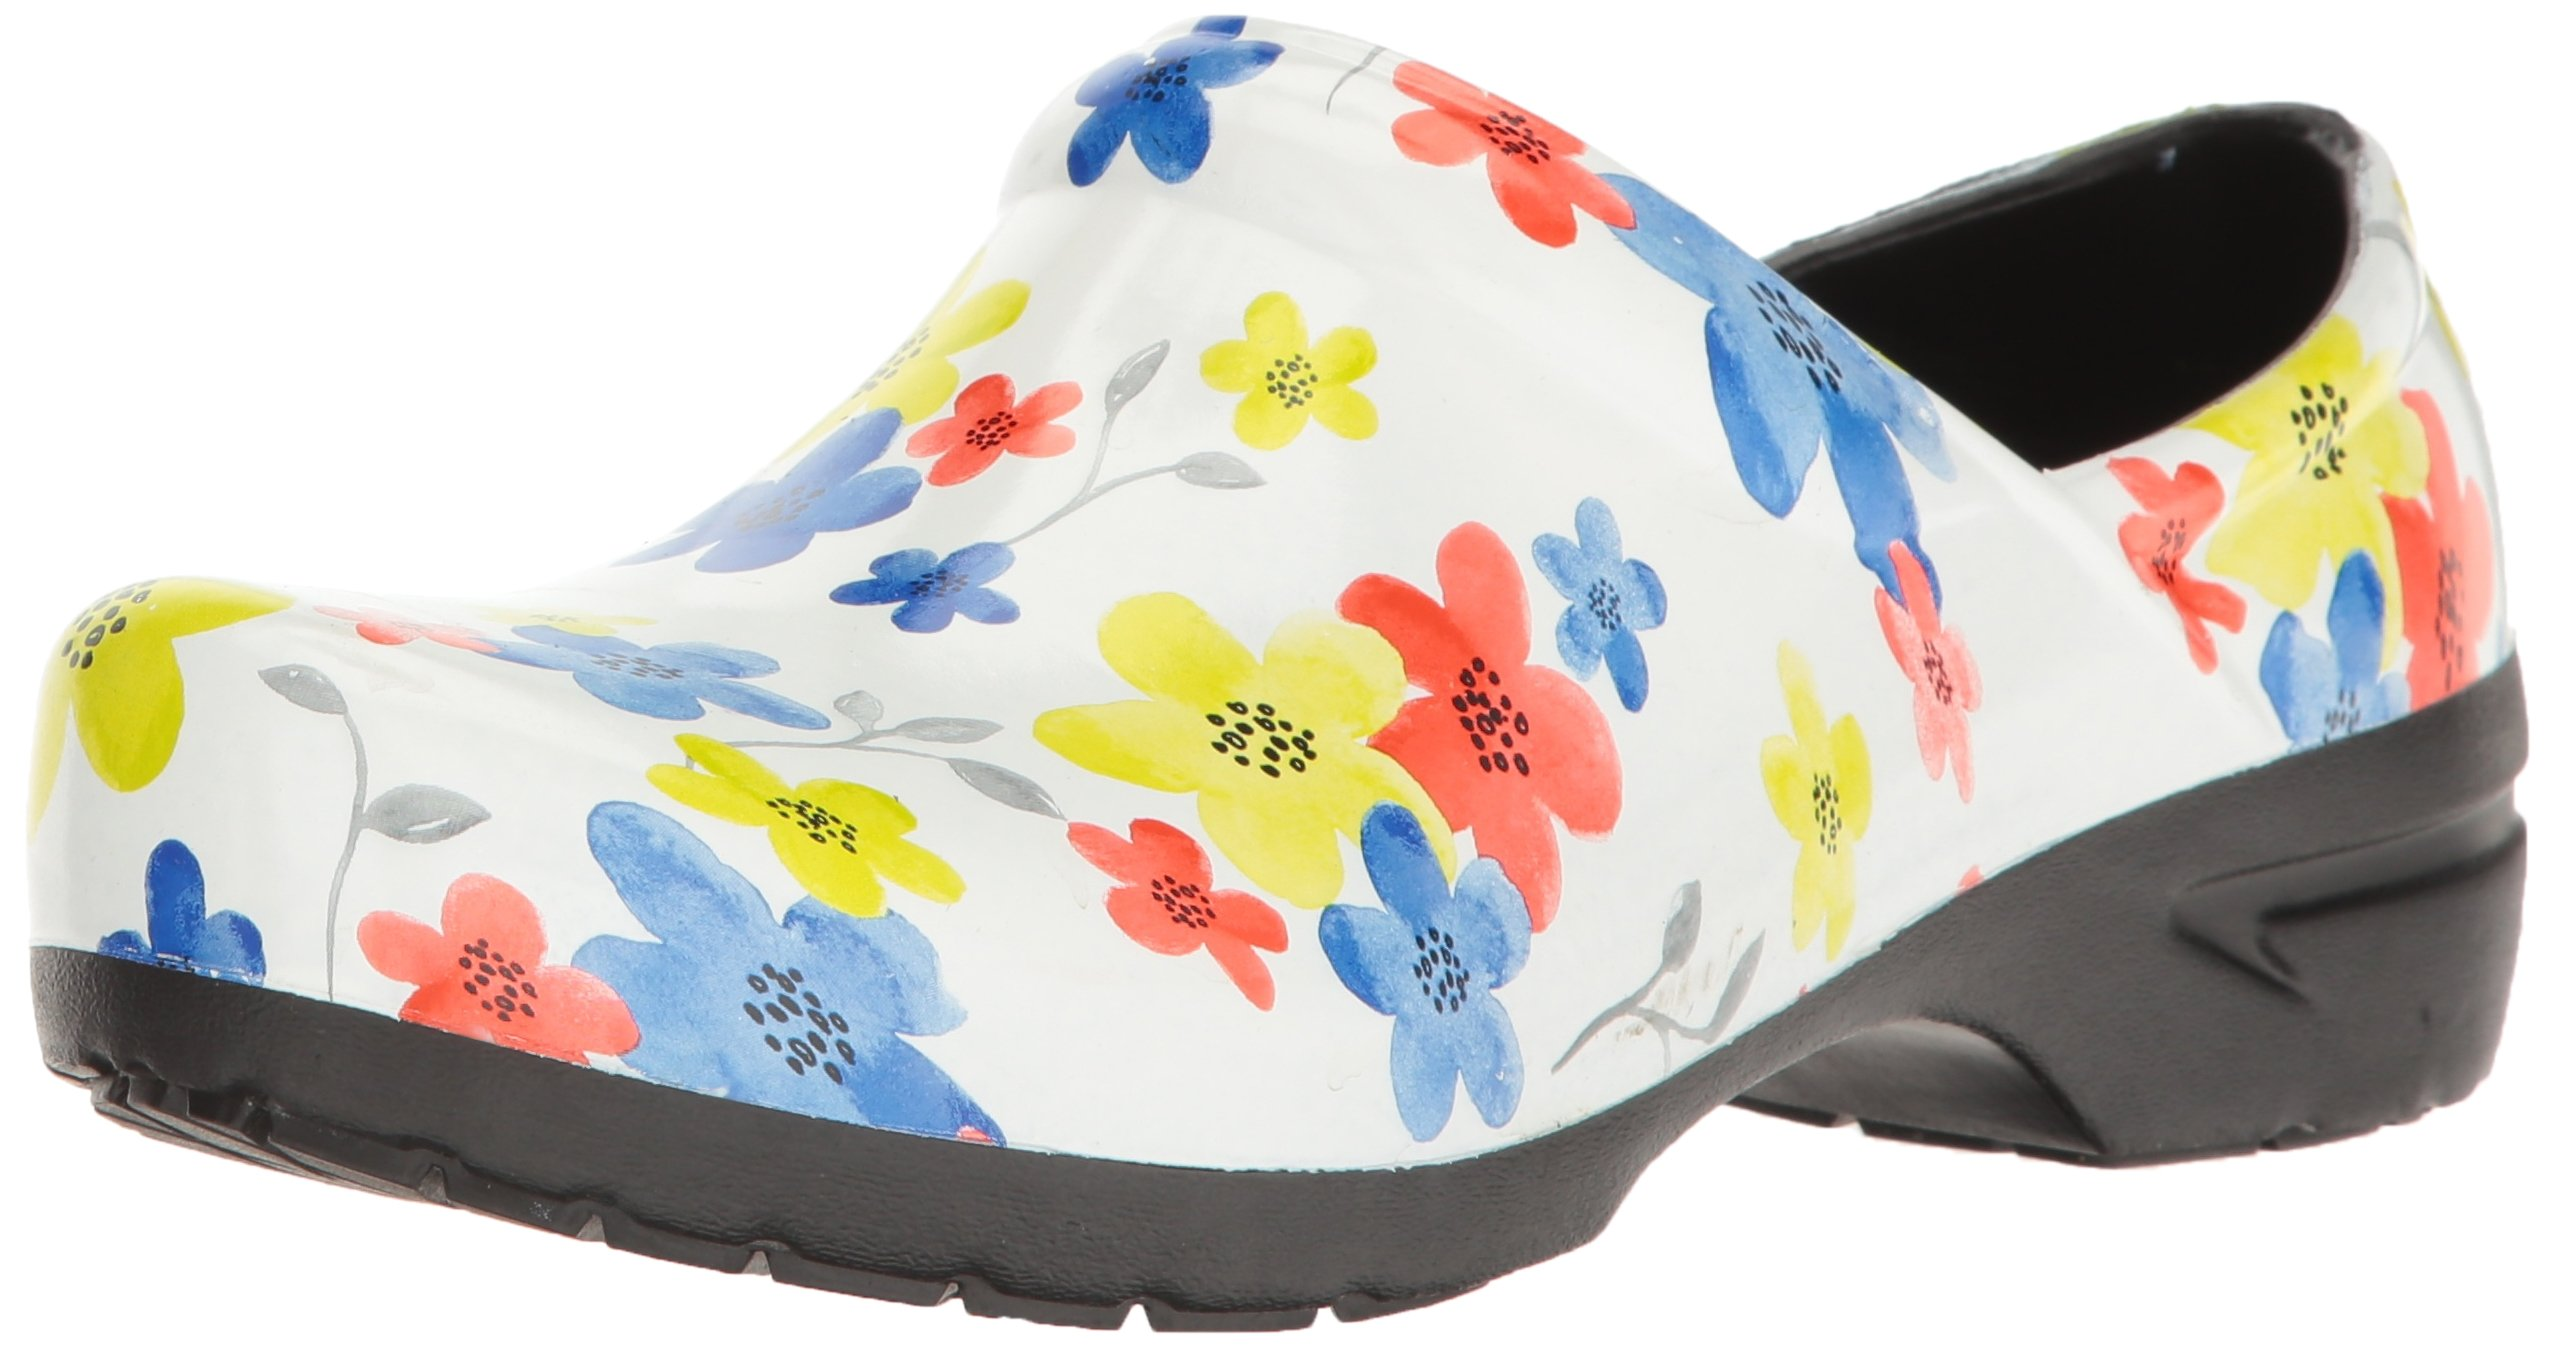 Anywear SRANGEL Closed Back Plastic Clog in Magnificent Meadow